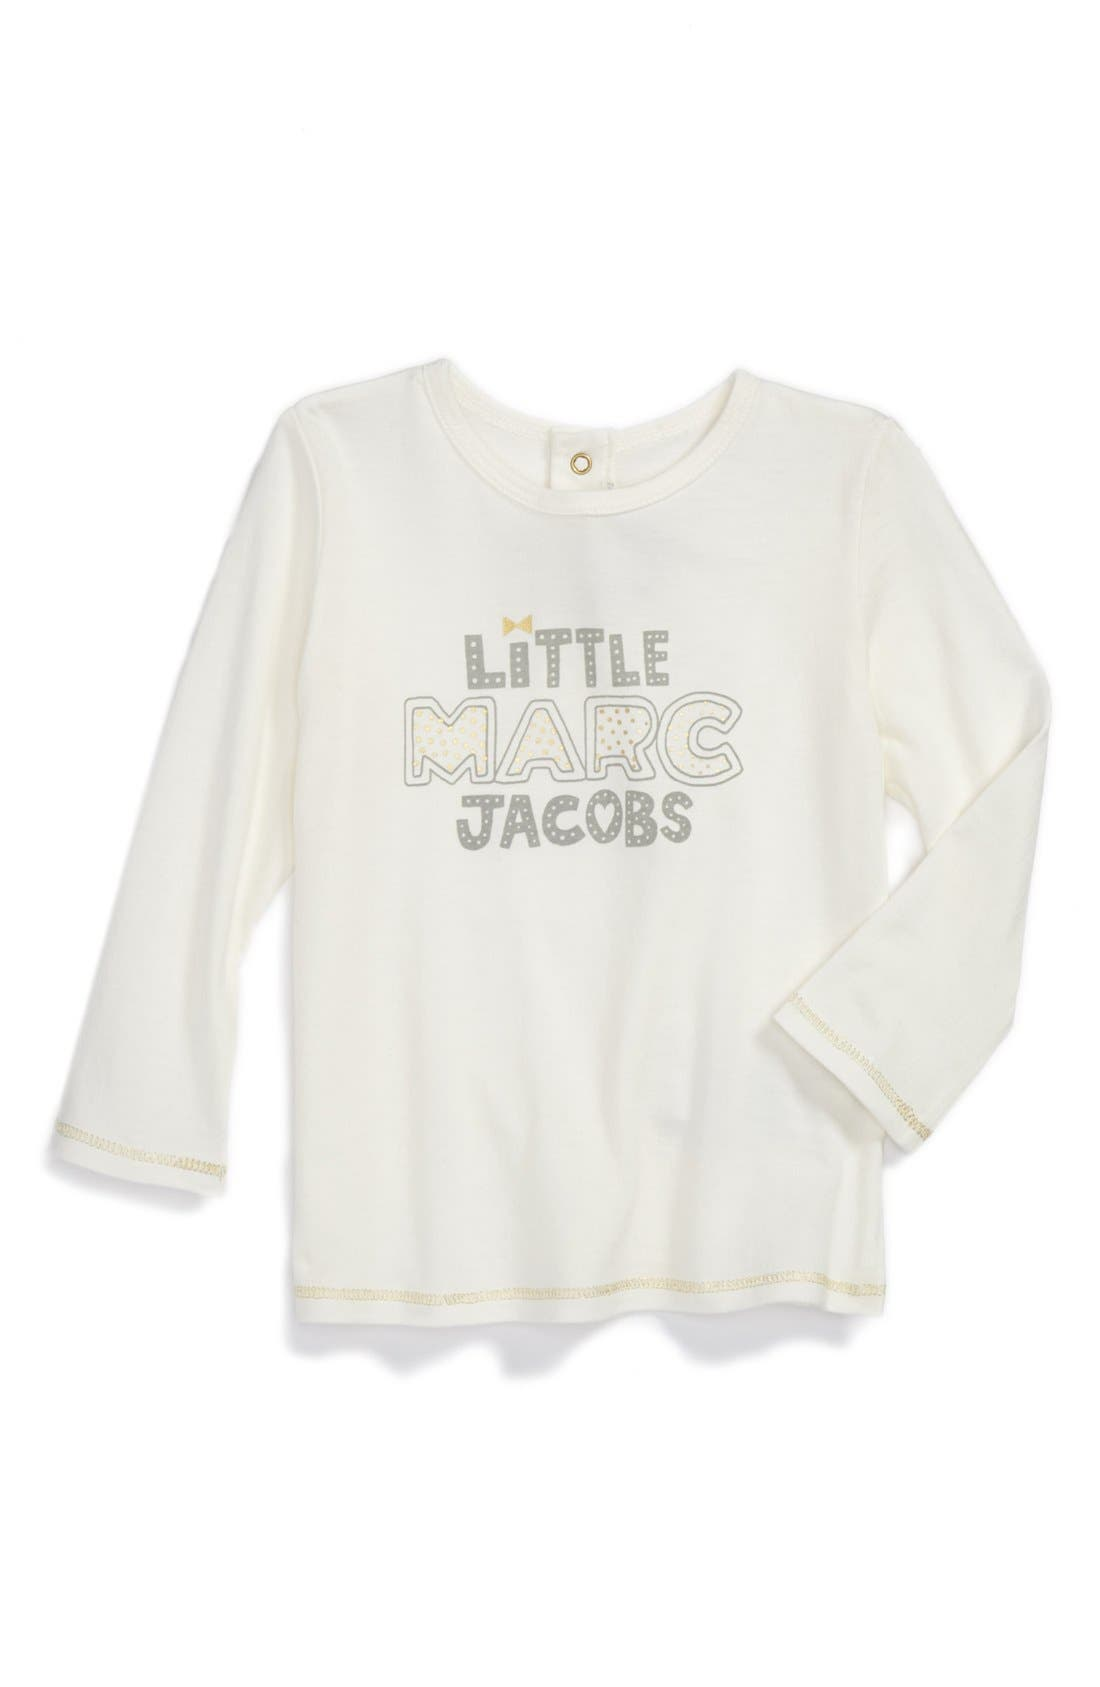 Main Image - LITTLE MARC JACOBS Long Sleeve Tee (Baby Girls)